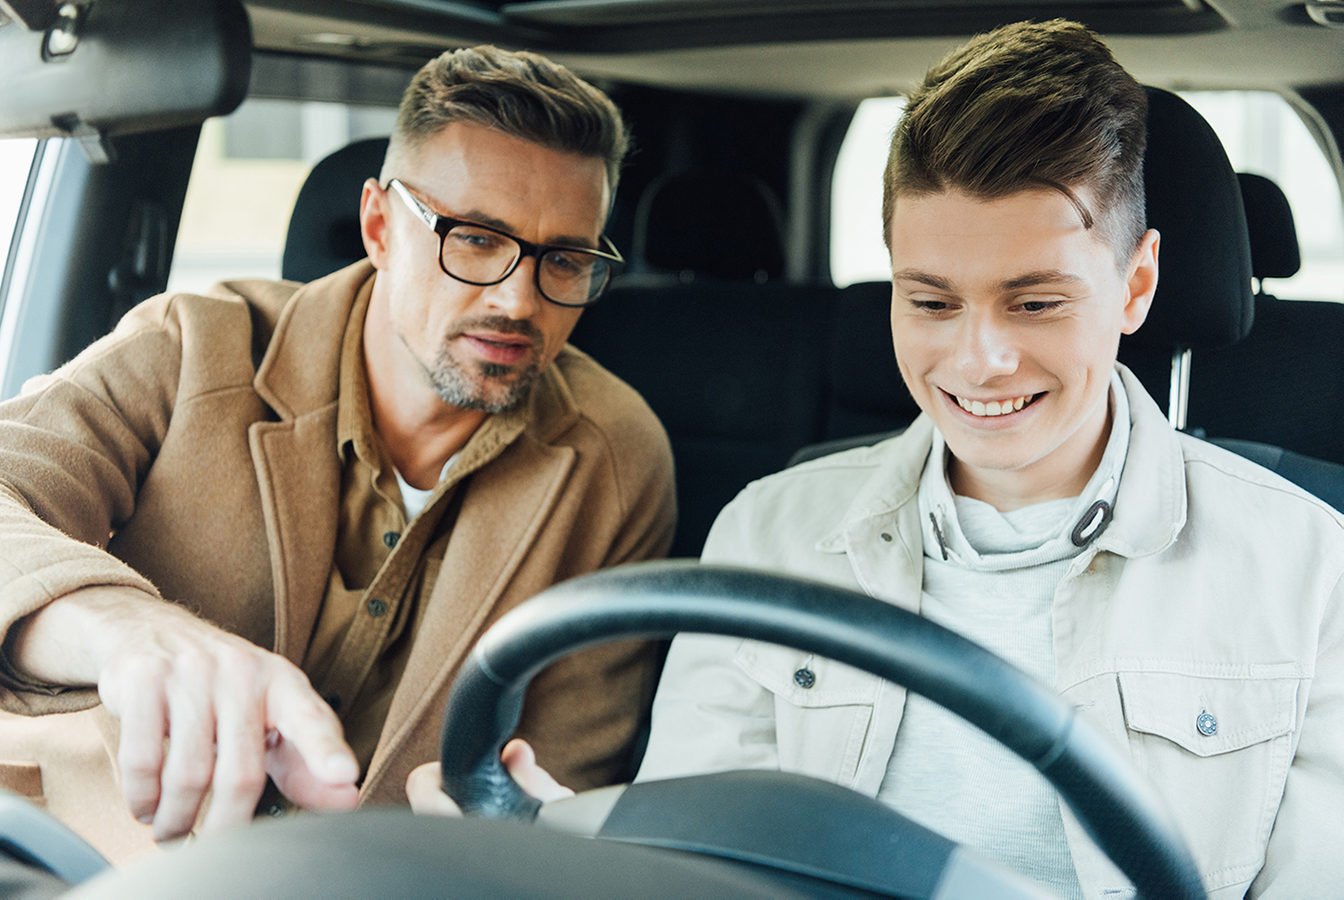 Man showing his child how to drive a car